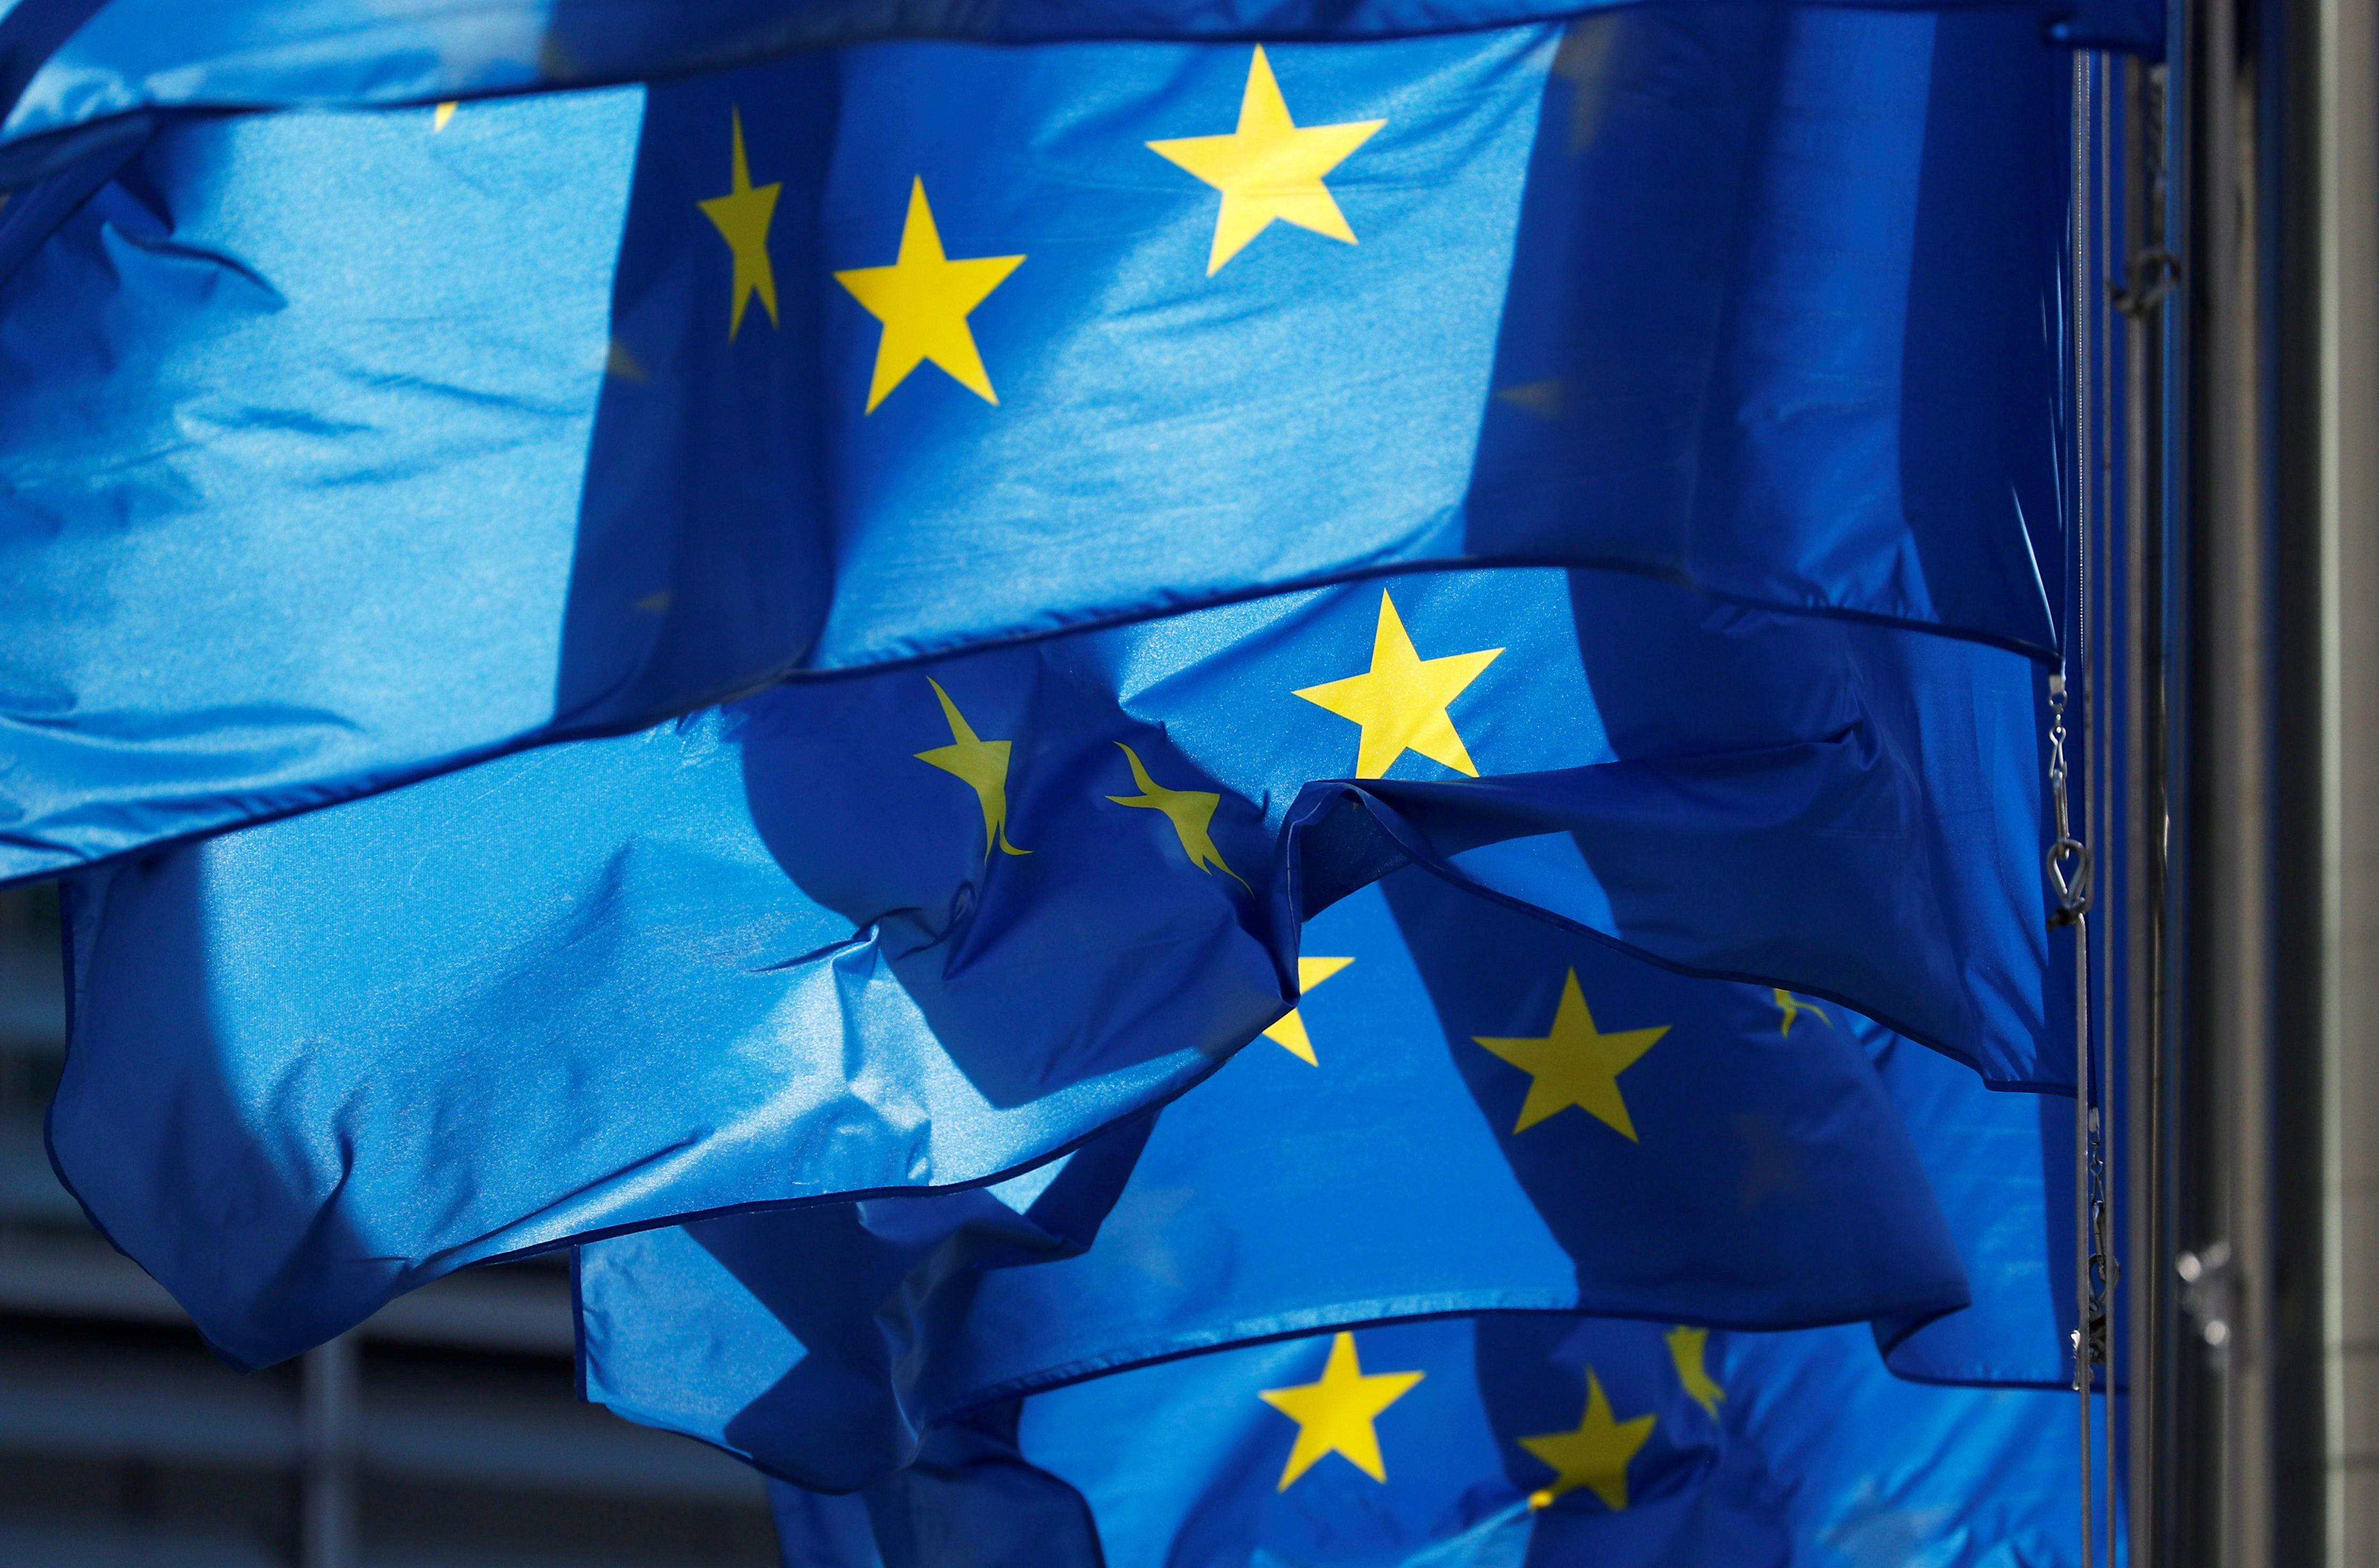 Europe's East not catching up, may question value of EU: ECB